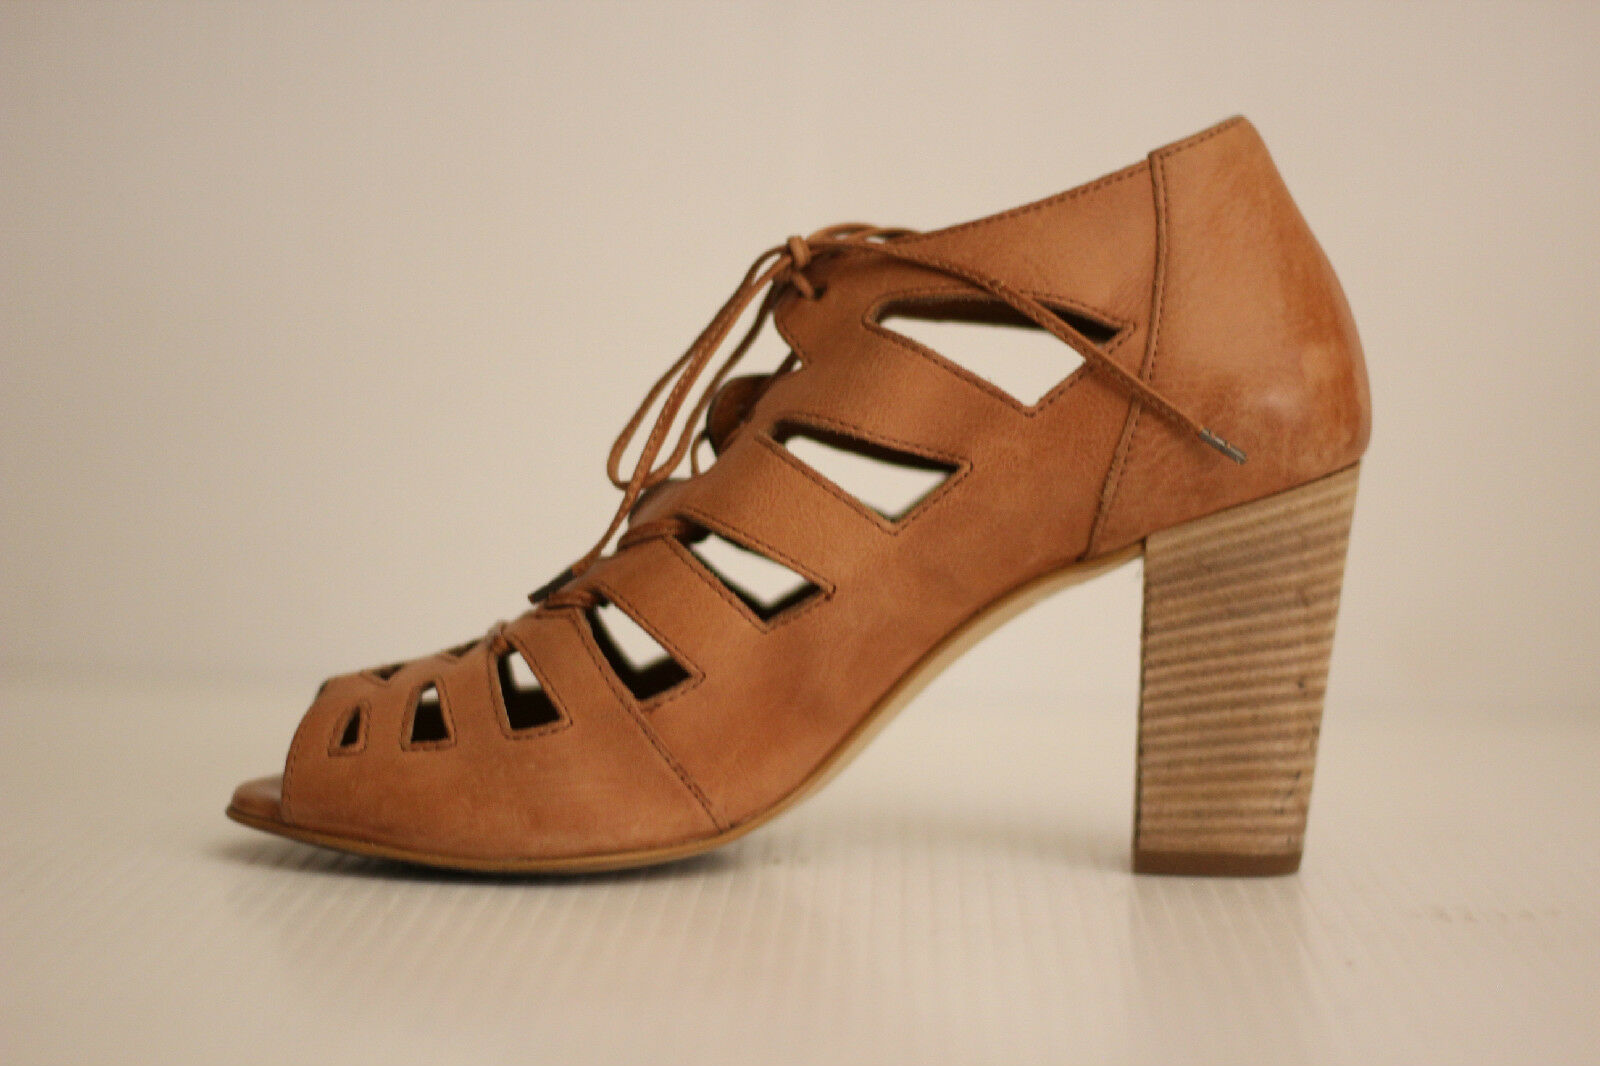 Paul Grün Jansen Lace-Up Block Heel Sandal- Cuoio Leather  - 8 US   Leather 5.5 UK (W8) 56b81d